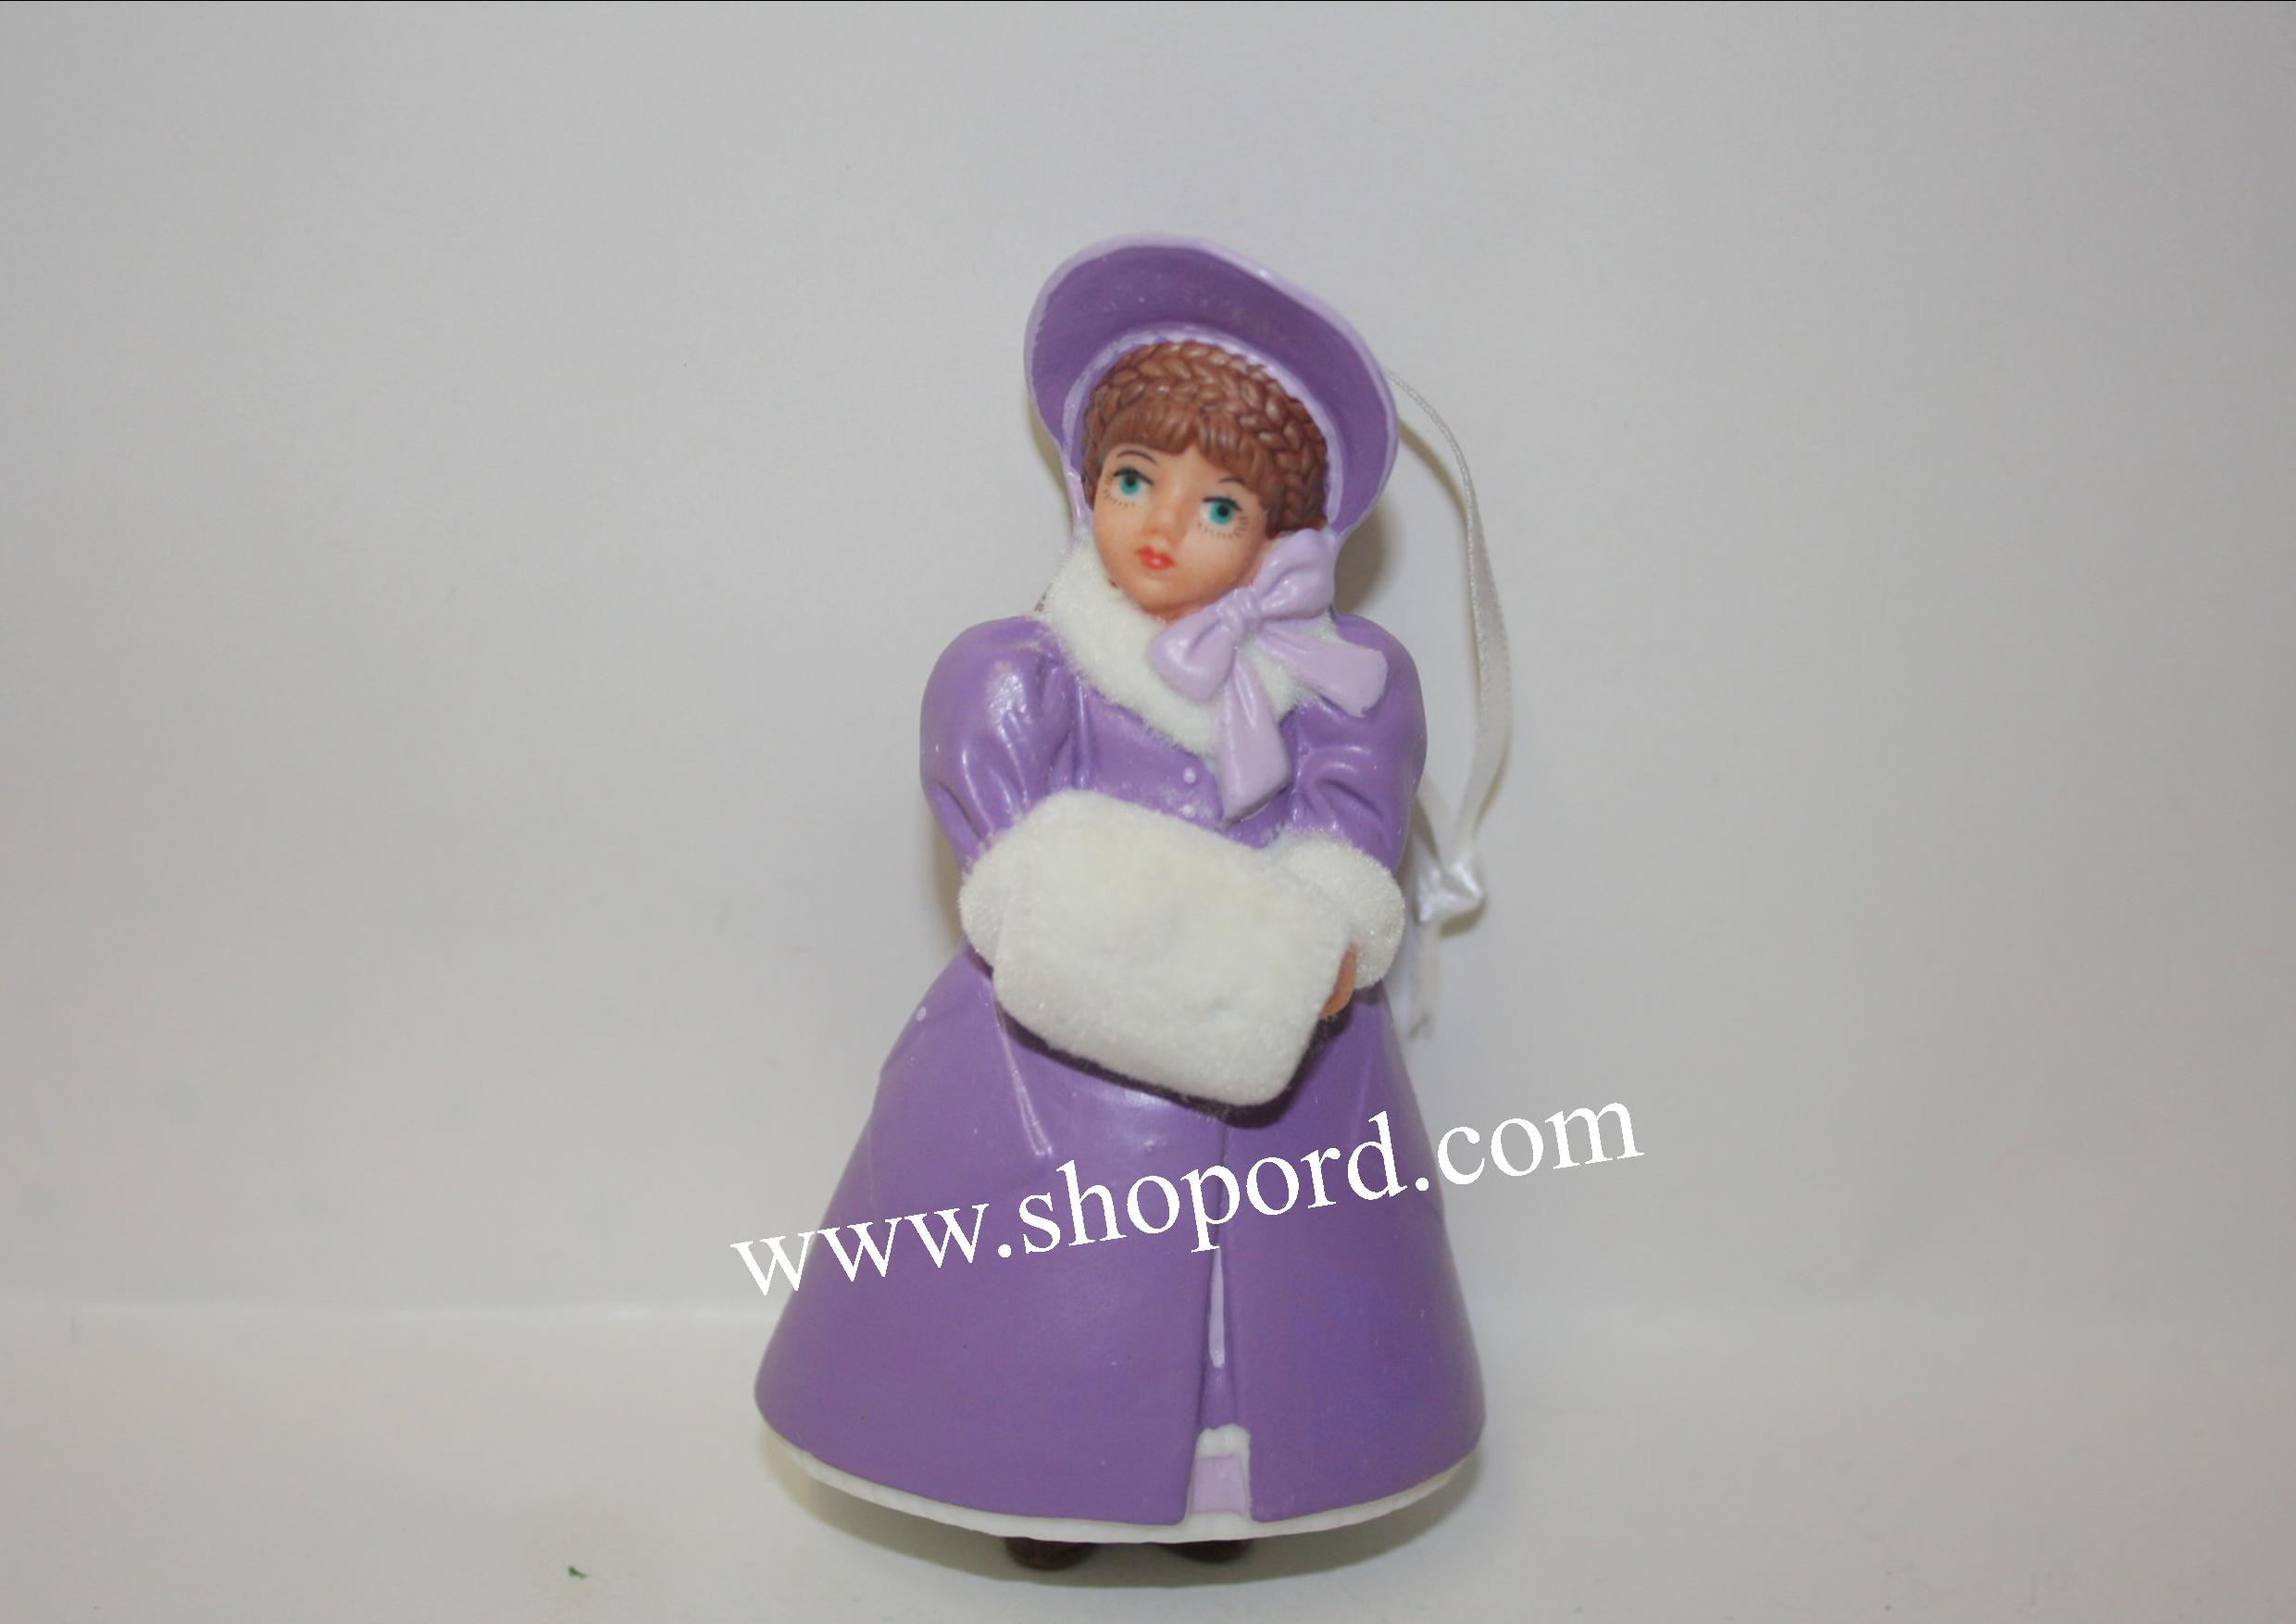 Hallmark 2001 Margaret Meg March Ornament Madame Alexander Little Women 1st In The Series QX6315